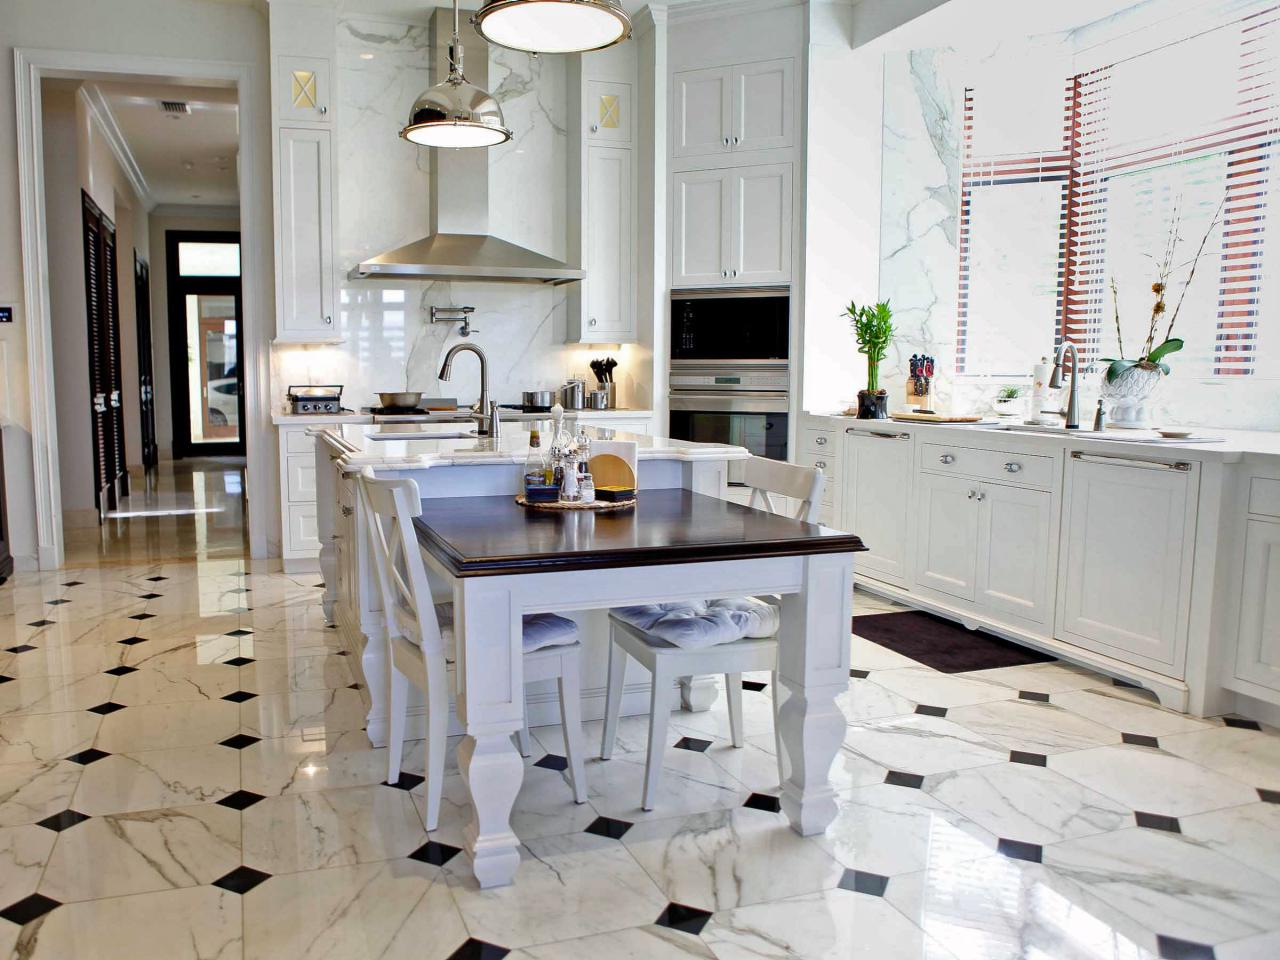 Ceramic Tile Floor In The Kitchen